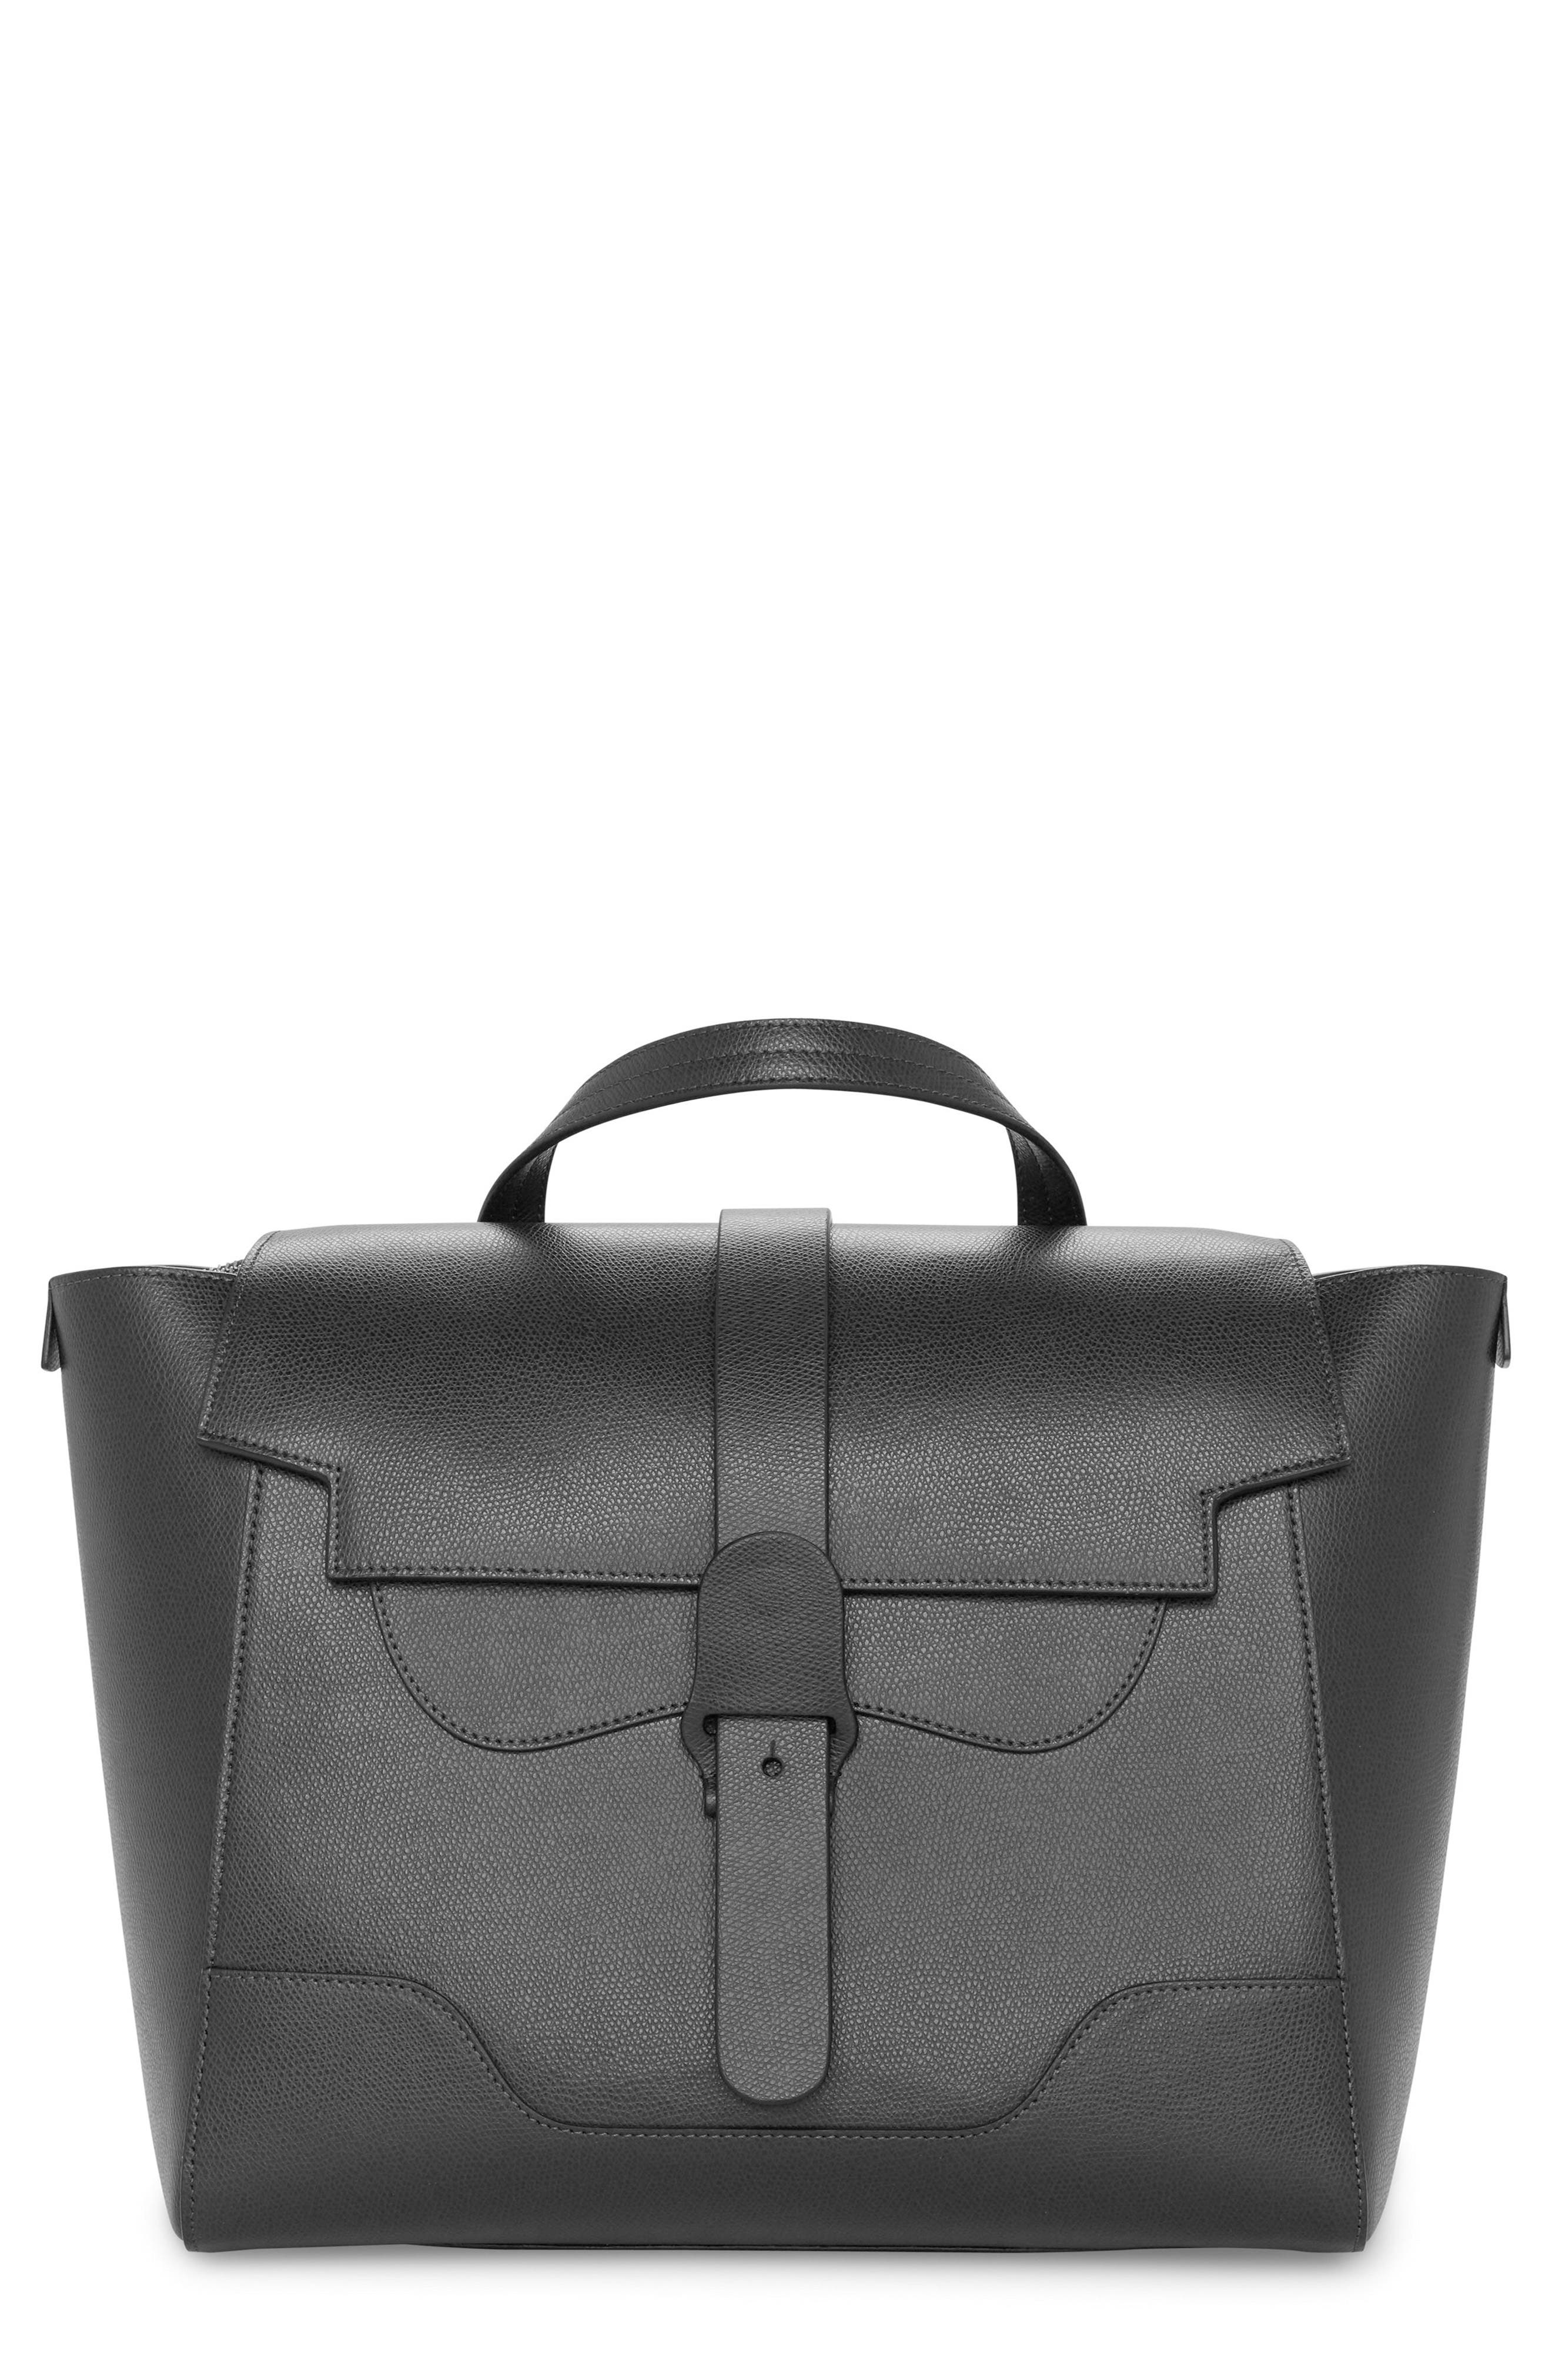 Maestra Pebbled Leather Satchel,                         Main,                         color, 001